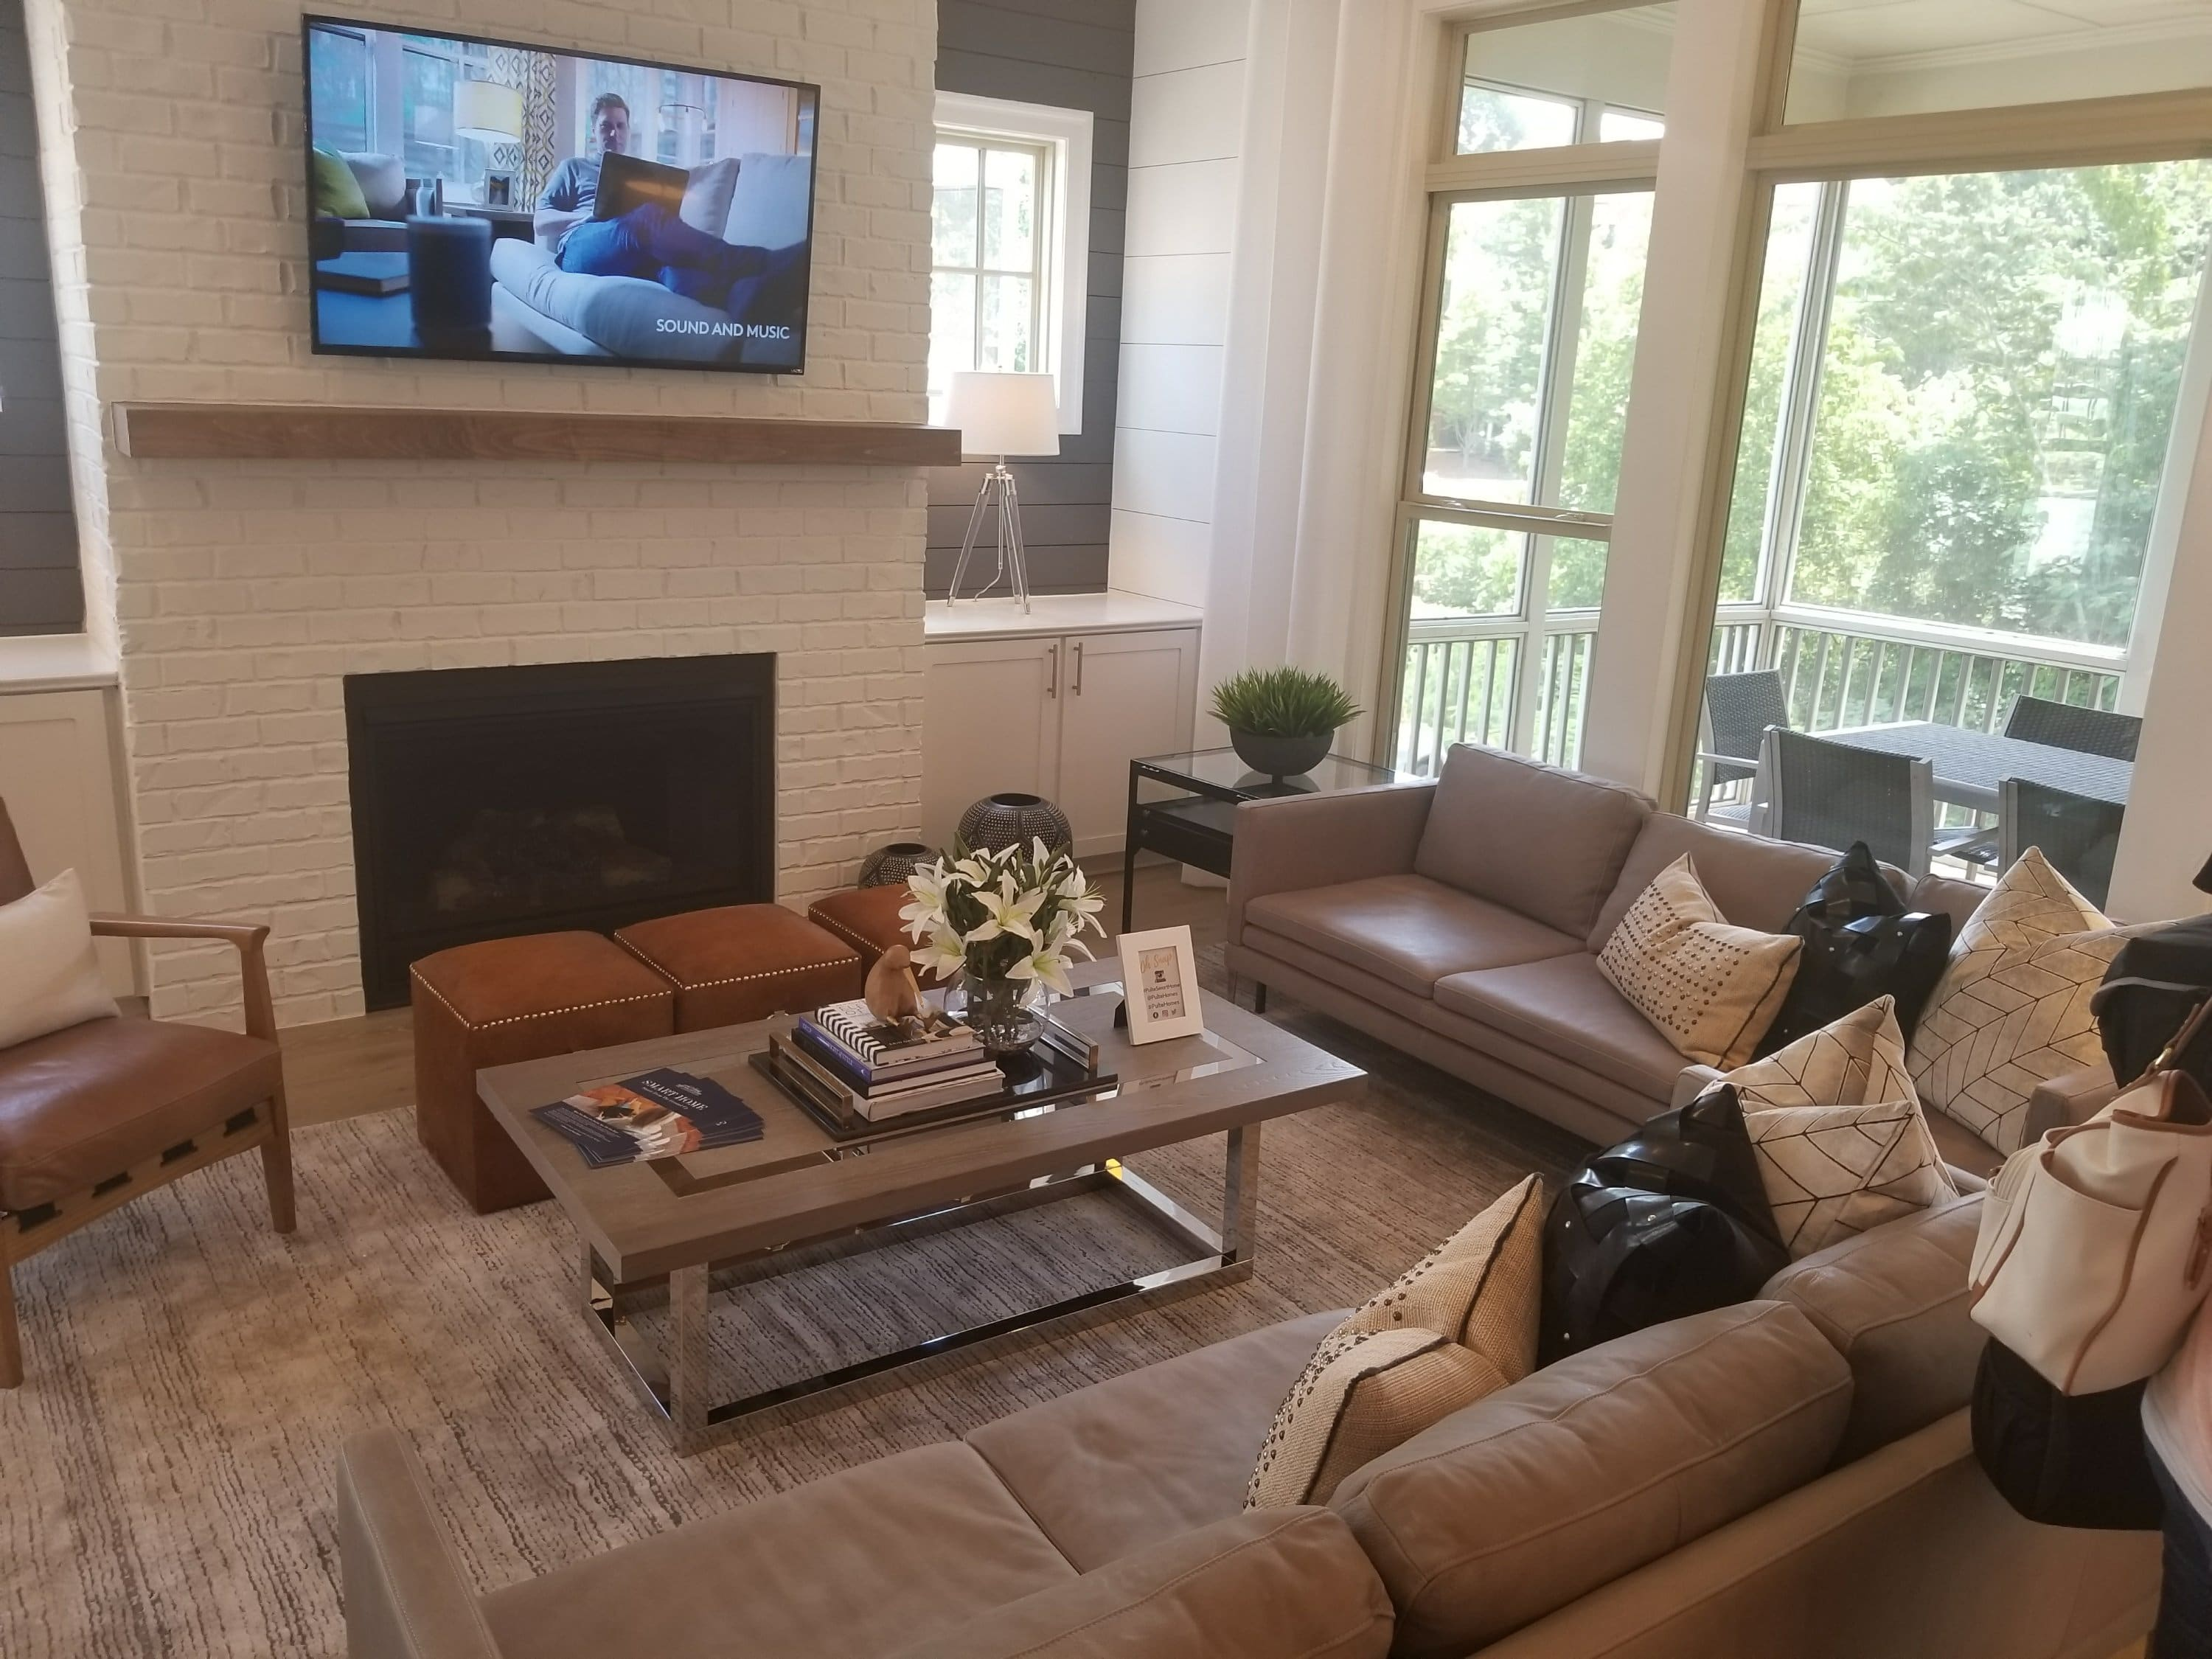 Pulte Smart Home interior with smart entertainment systems